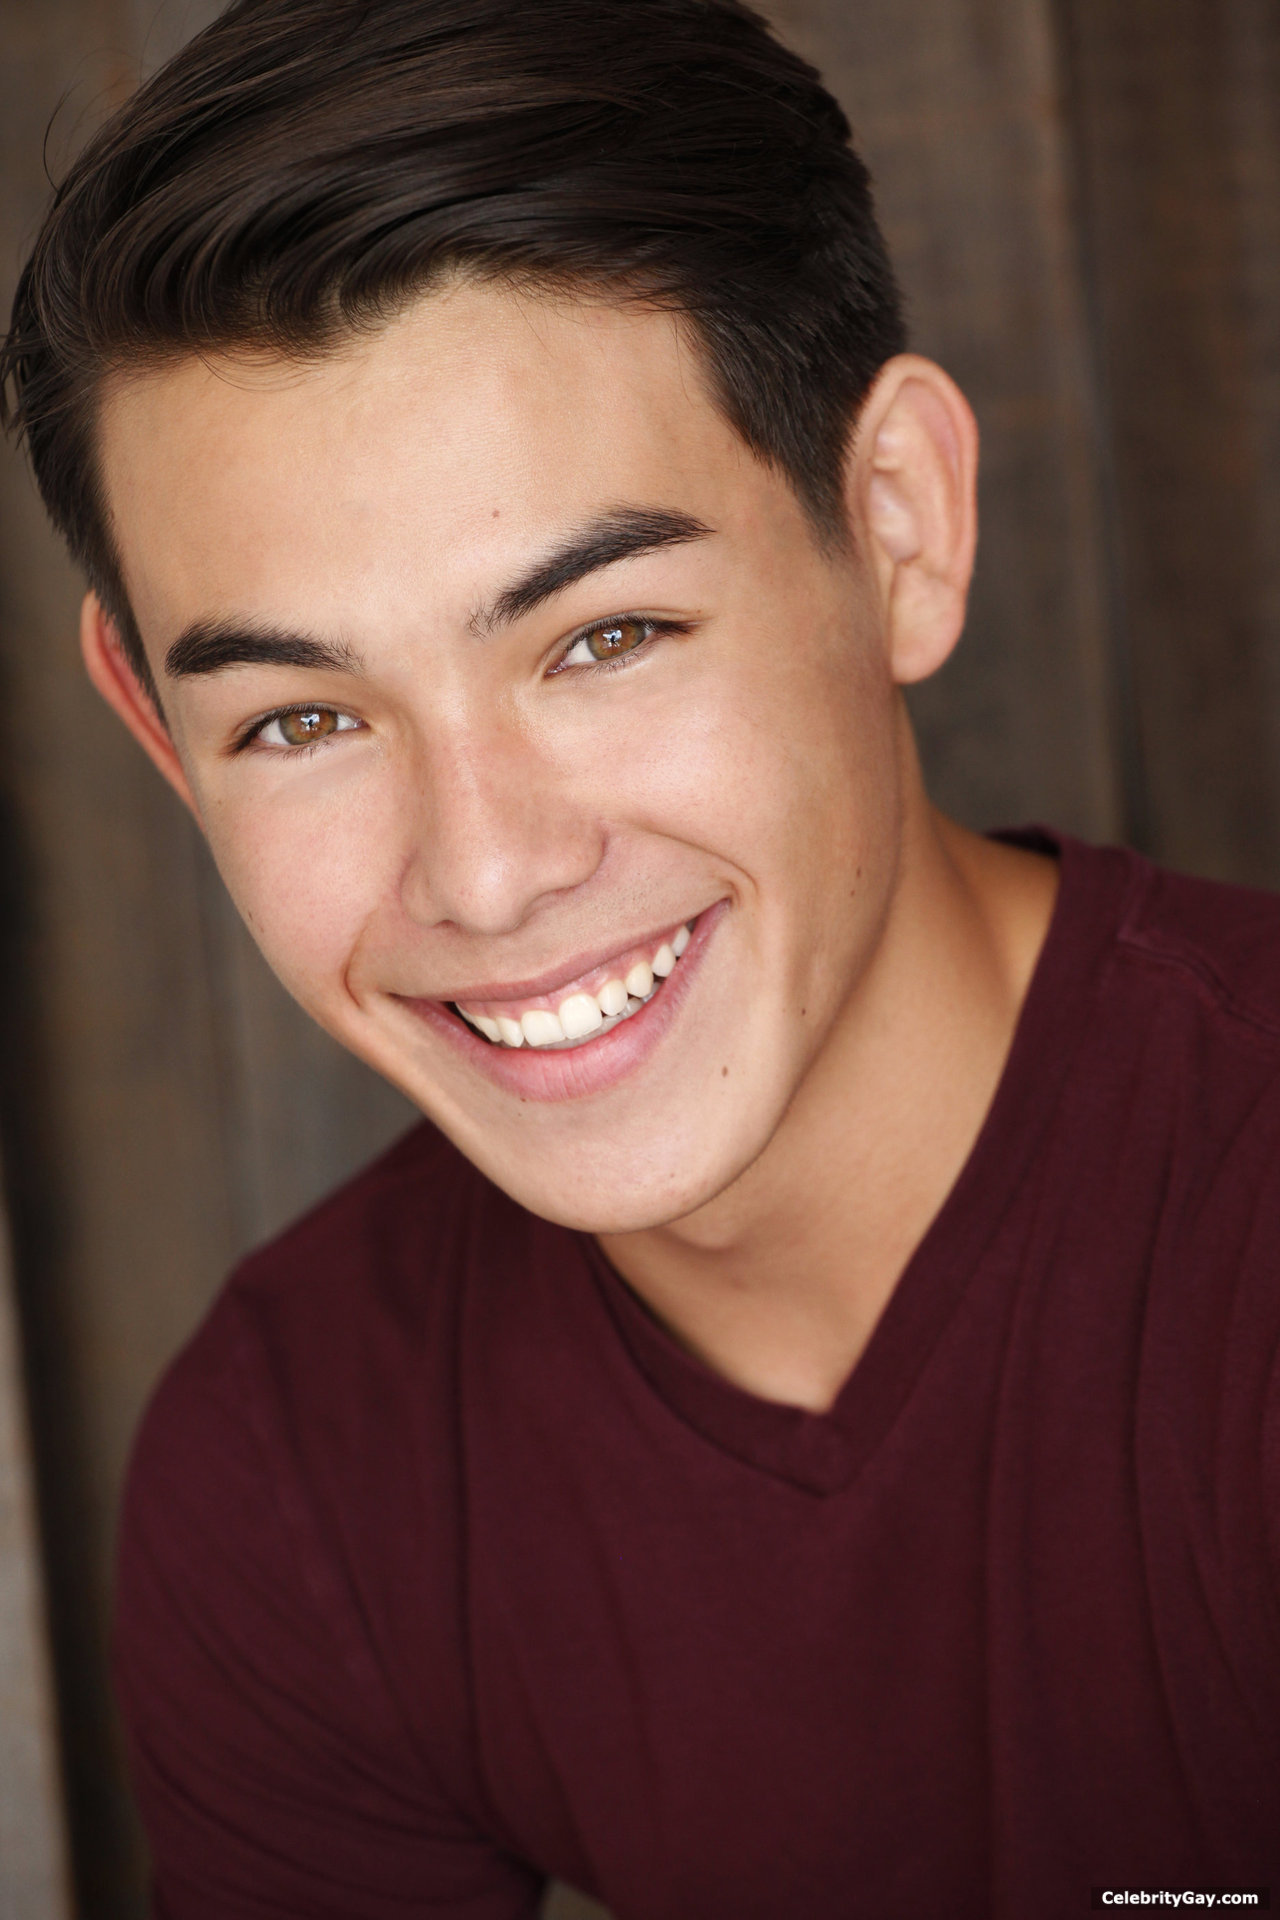 Opinion obvious. Ryan potter sex tape